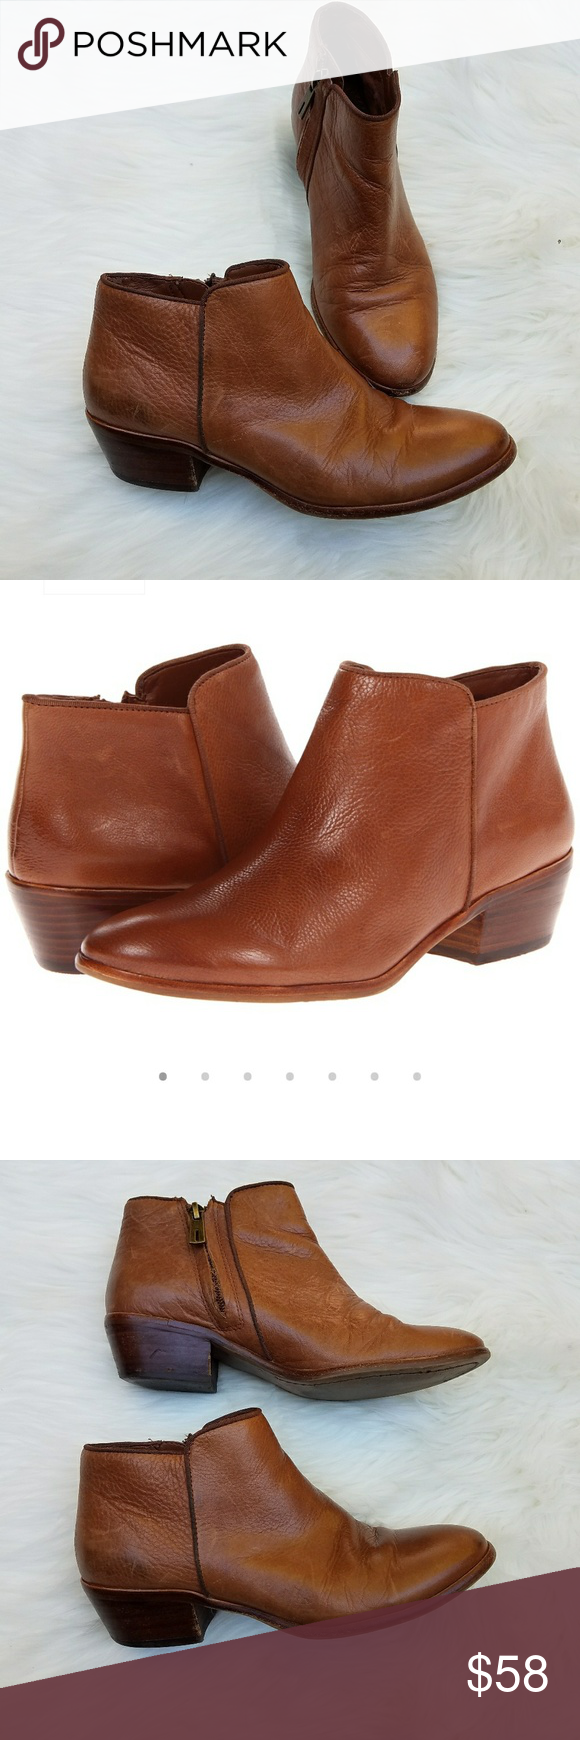 7109830a2 SAM EDELMAN Petty Ankle Boots Booties Cognac SAM EDELMAN Petty Ankle Boots  Booties Cognac. Great preowned condition! Size 6 M Sam Edelman Shoes Ankle  Boots ...